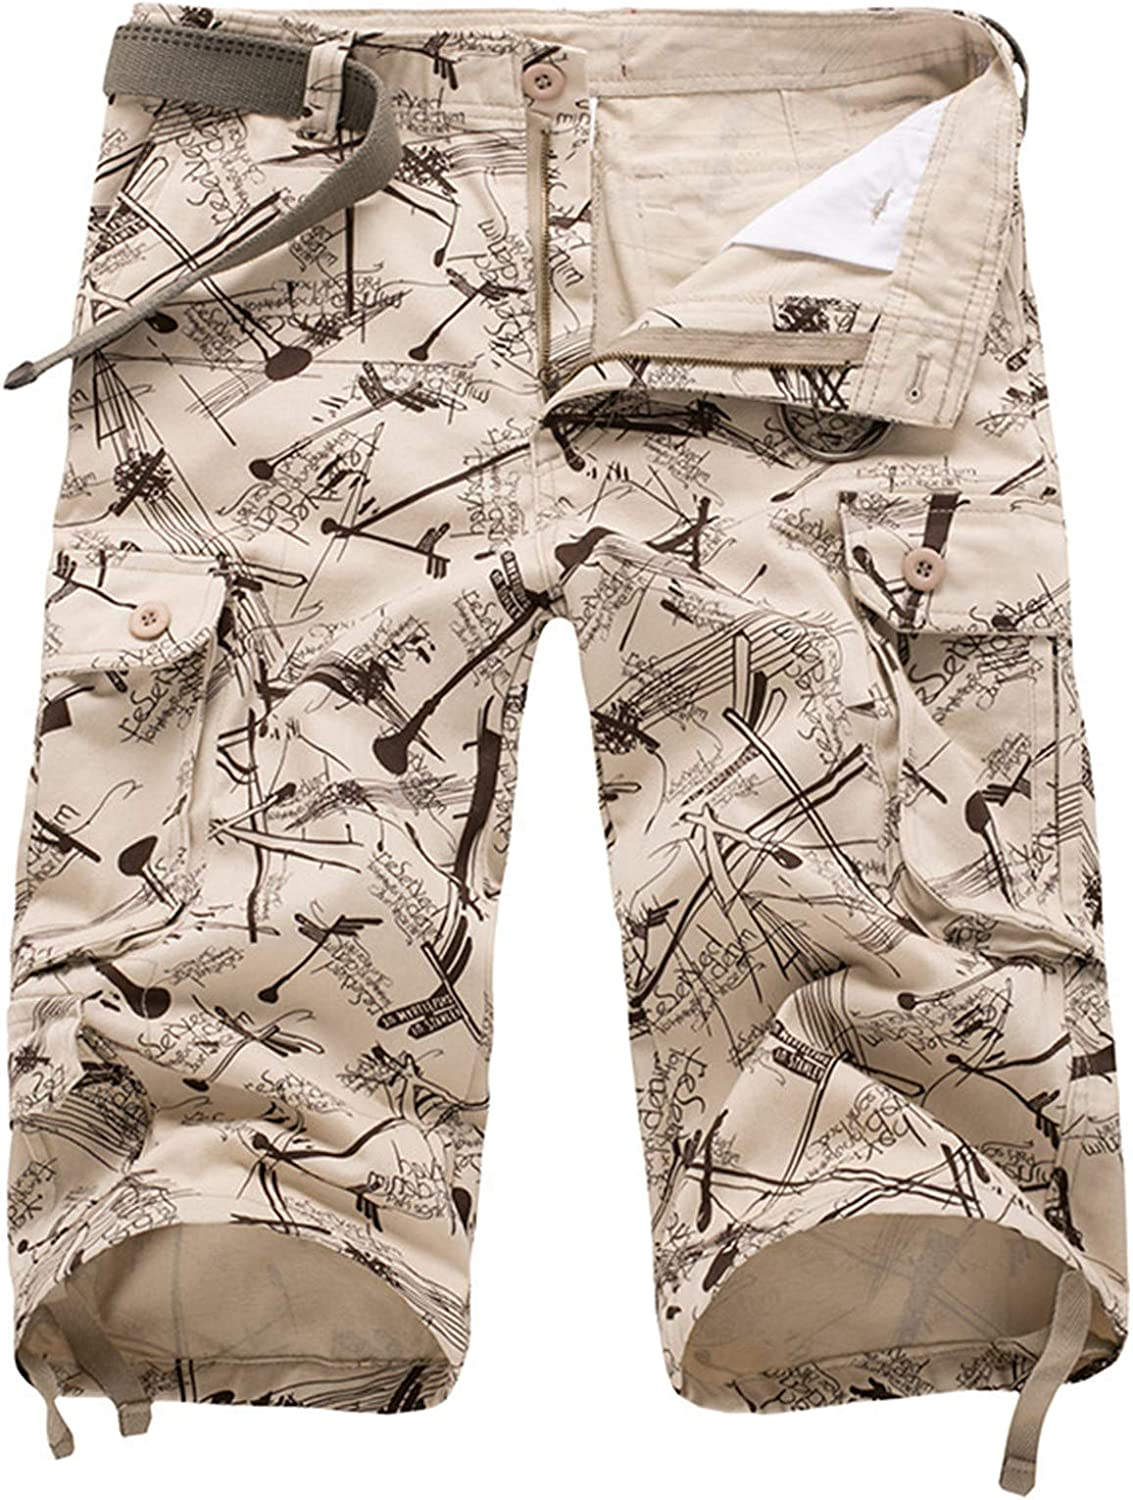 Summer Men's Cargo Beach Shorts Casual Camouflage Camo Baggy Military Short Pants Male Tactical Shorts